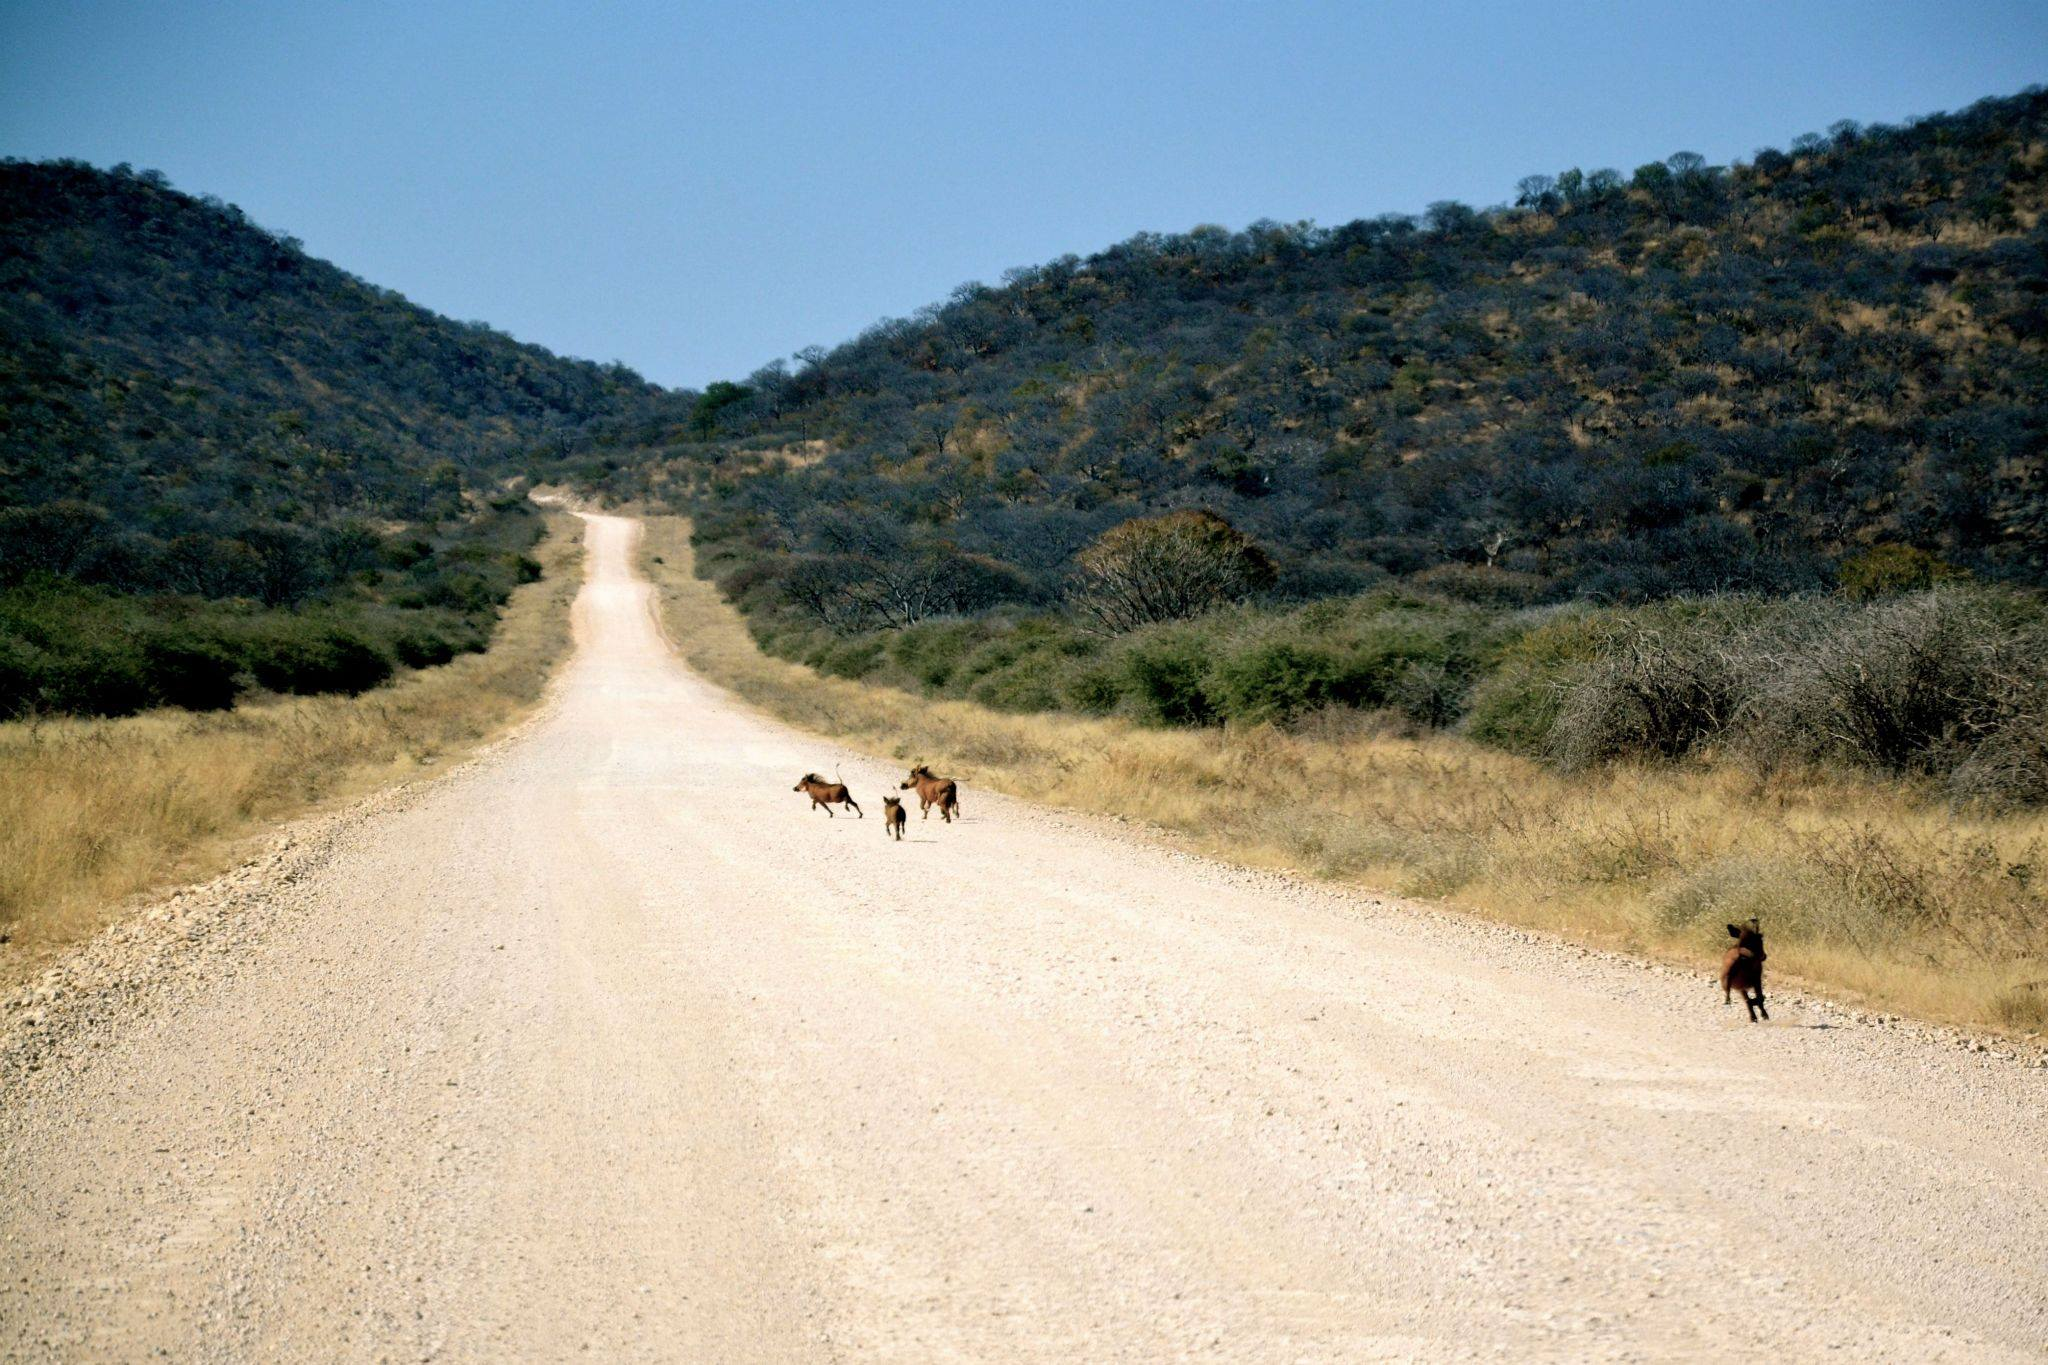 Warthogs, Namibian road. Photo ©Thomas Blomme